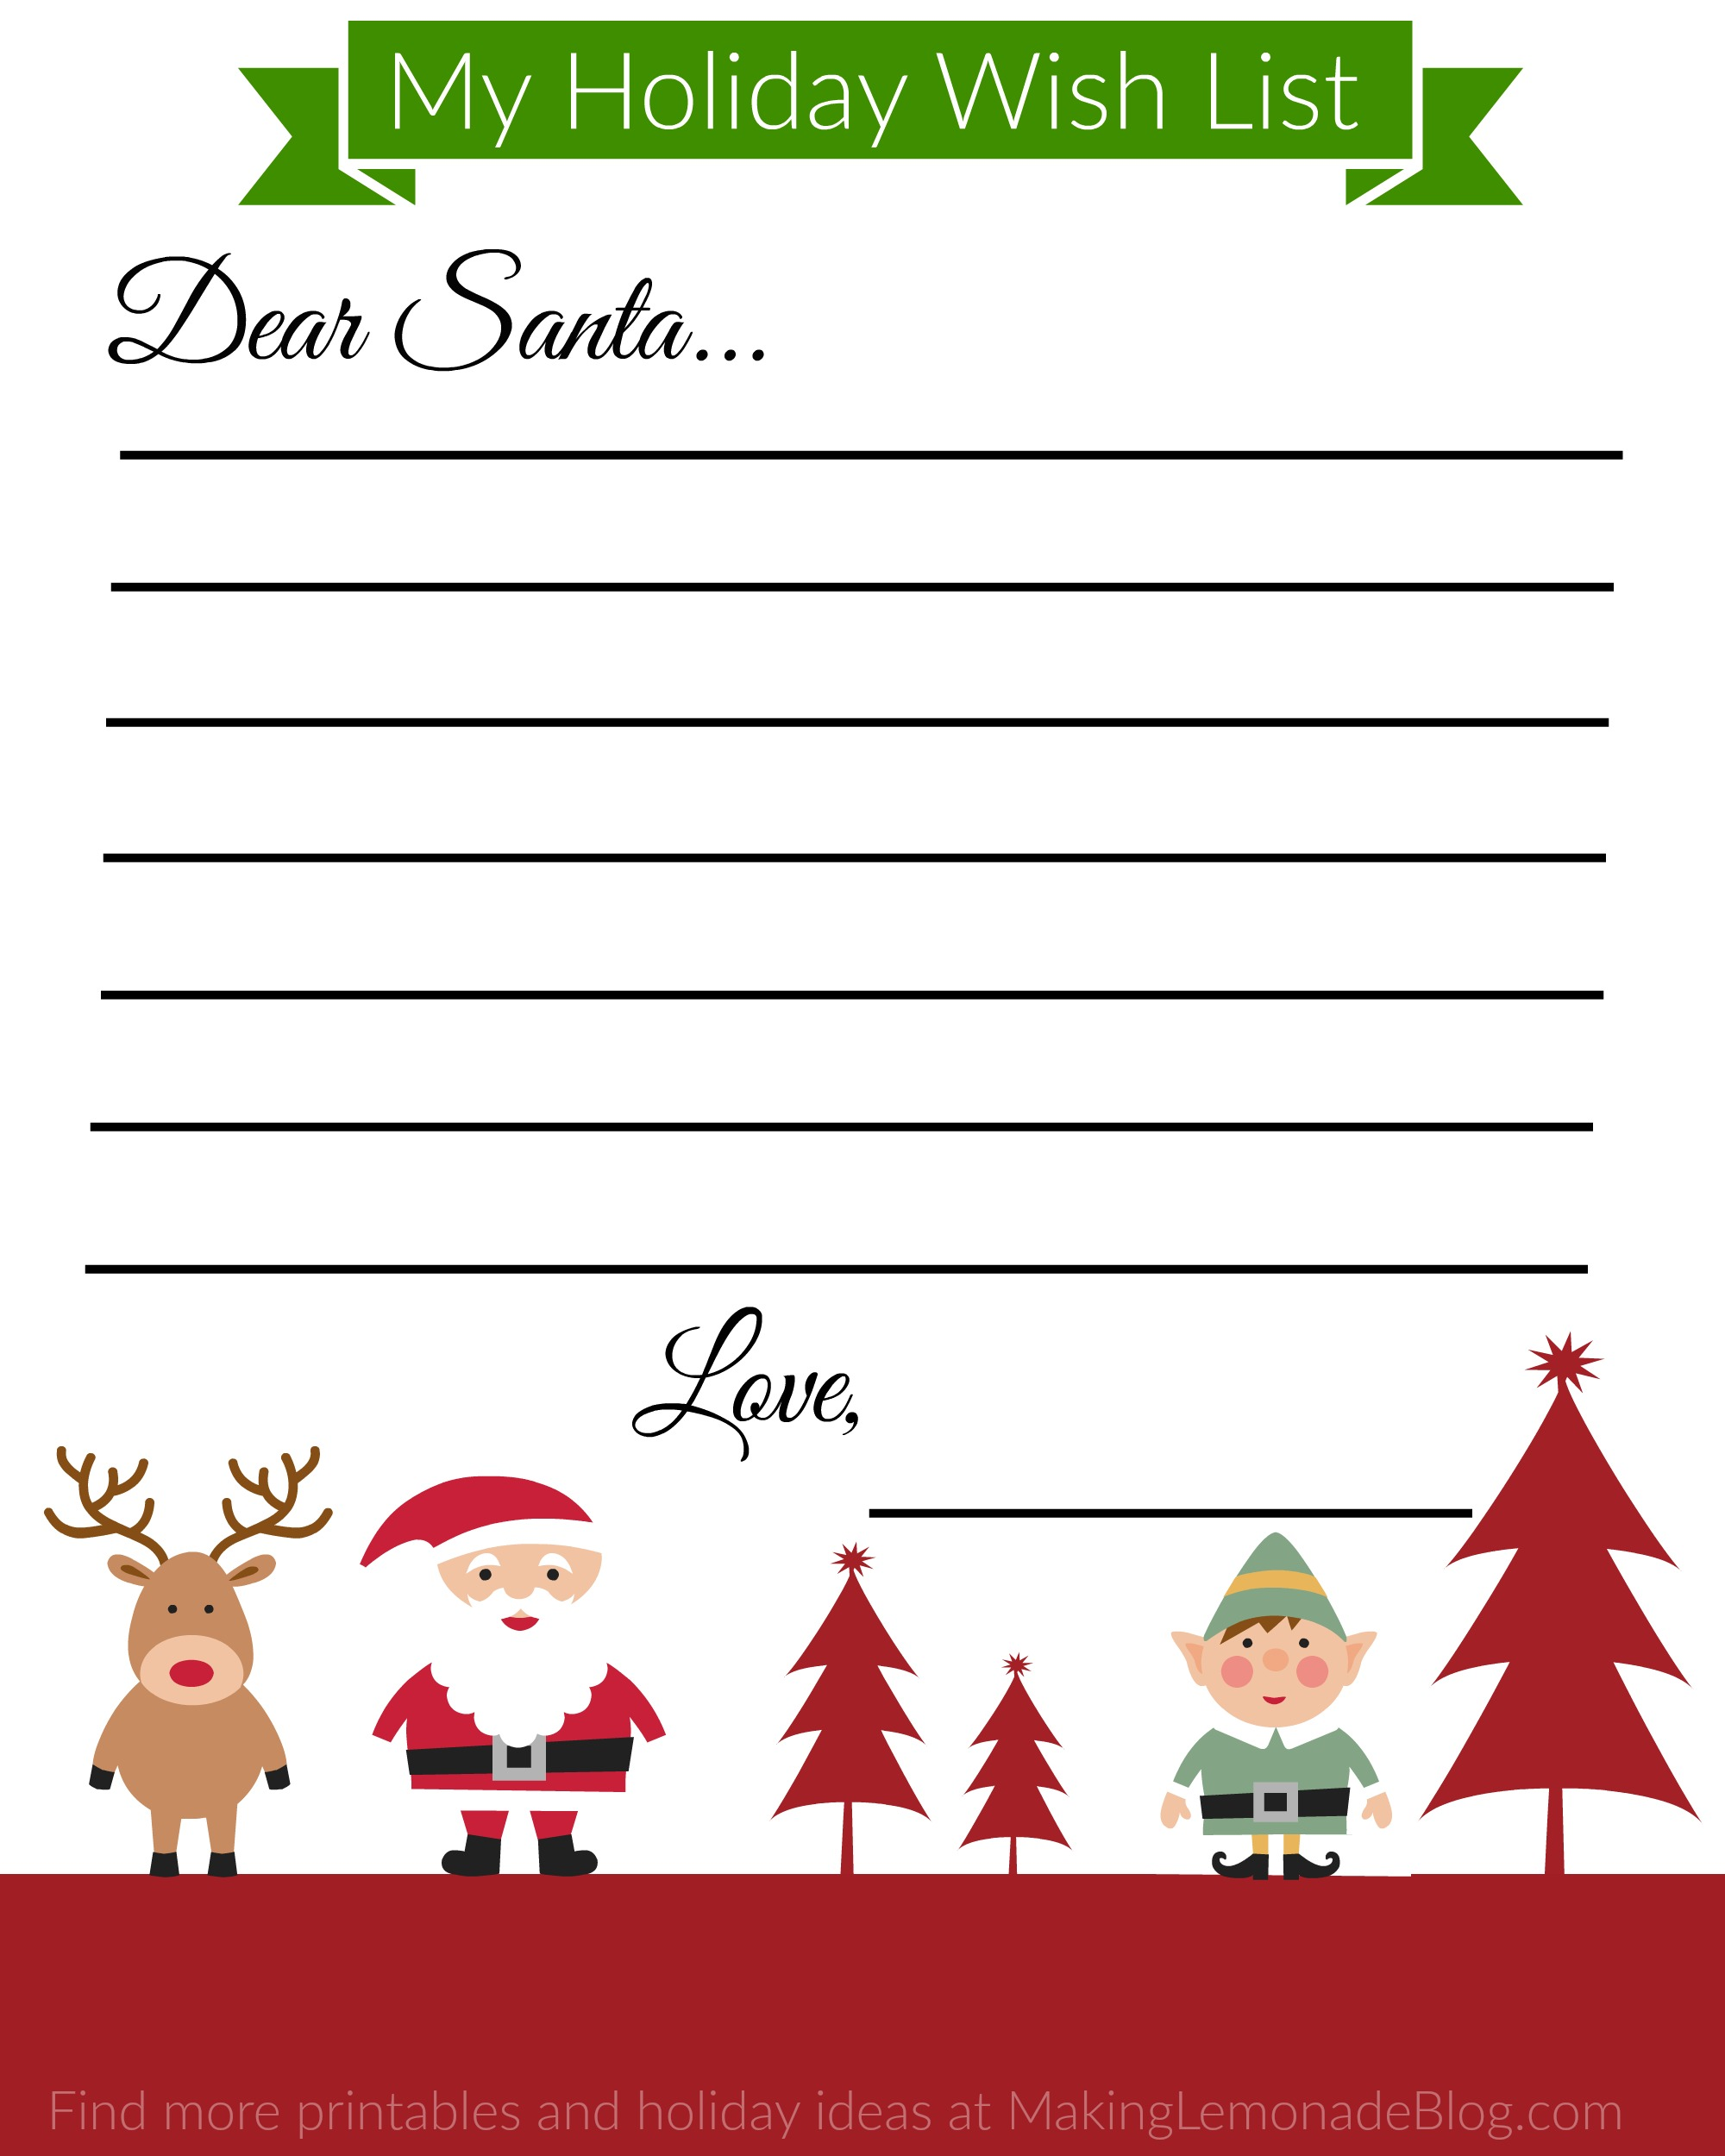 Printable Christmas Wish List For Kids.Free Printable Holiday Wish List For Kids Making Lemonade